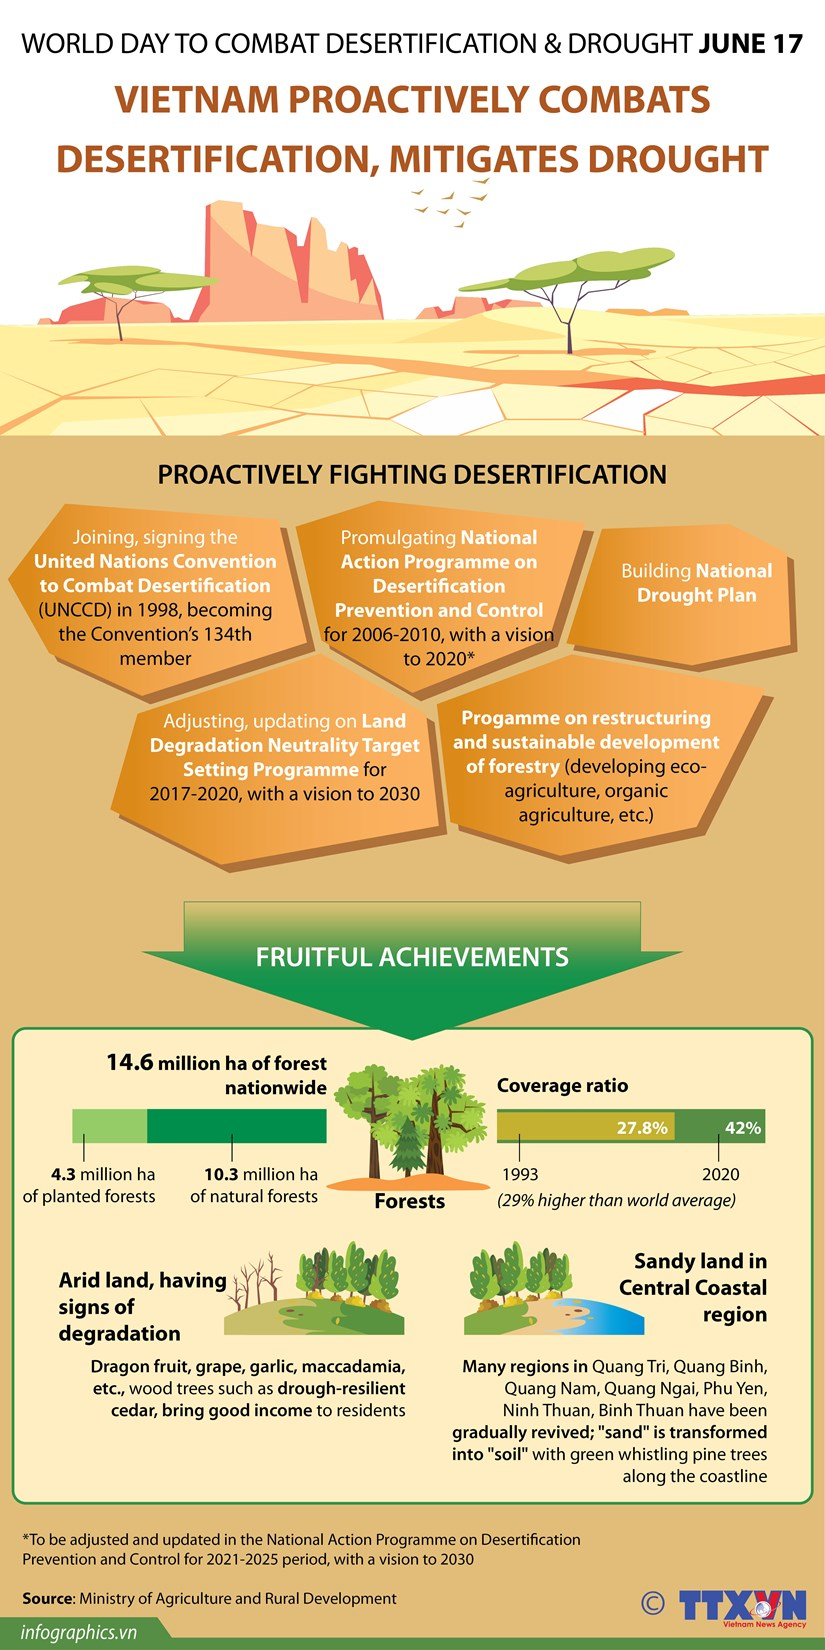 Vietnam proactively combats desertification, mitigates drought hinh anh 1